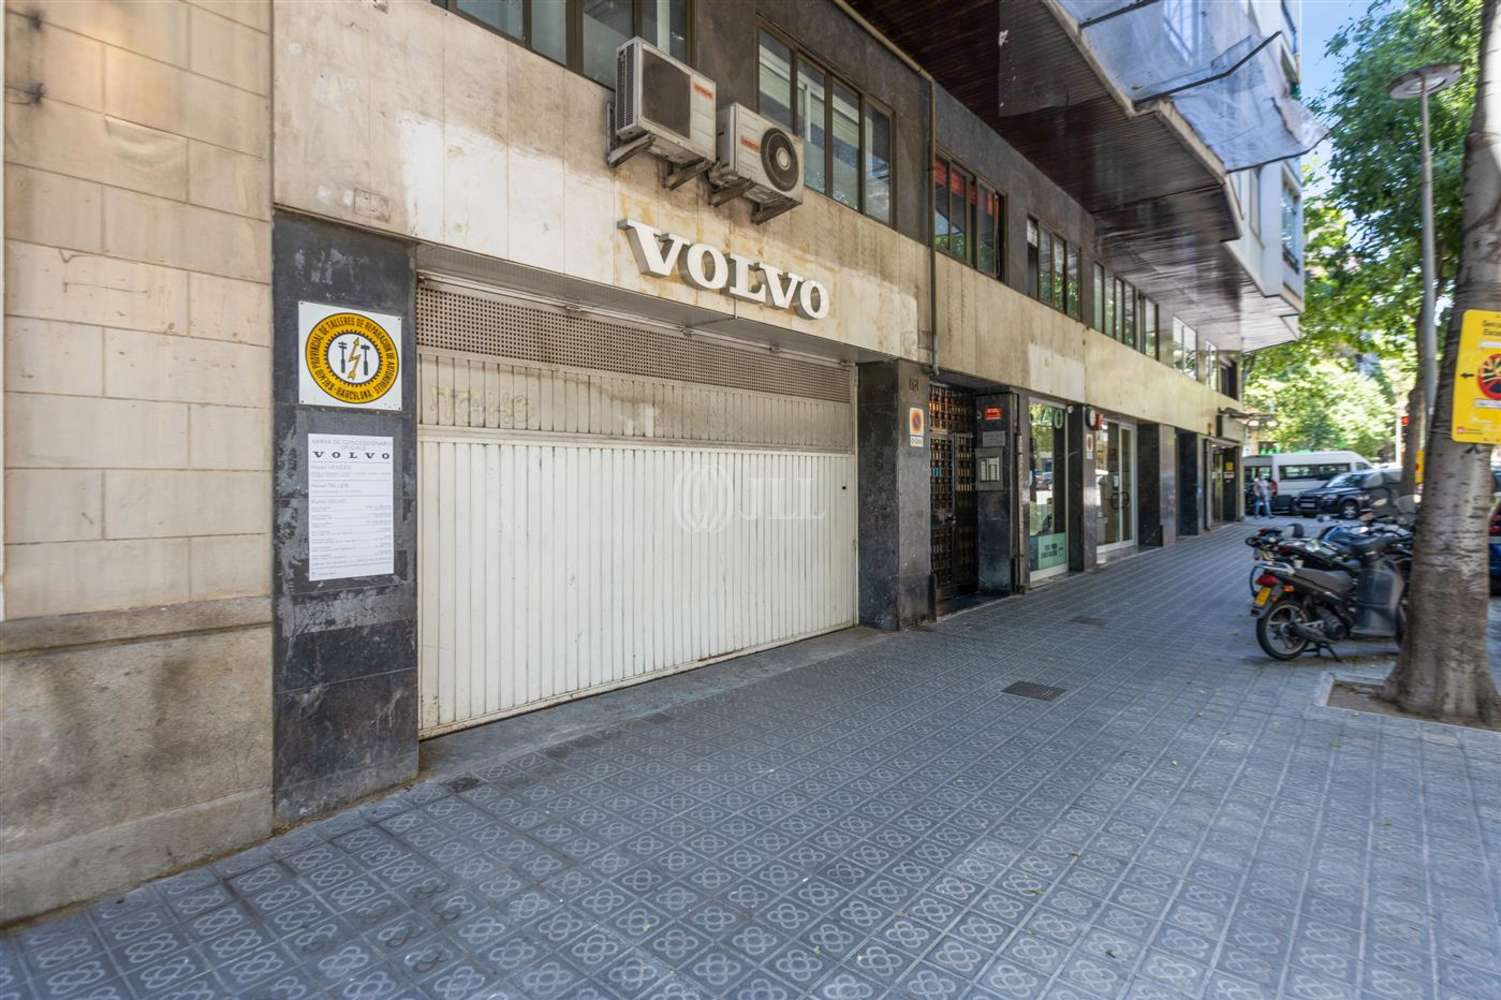 Local comercial Barcelona, 08036 - CASANOVA 163